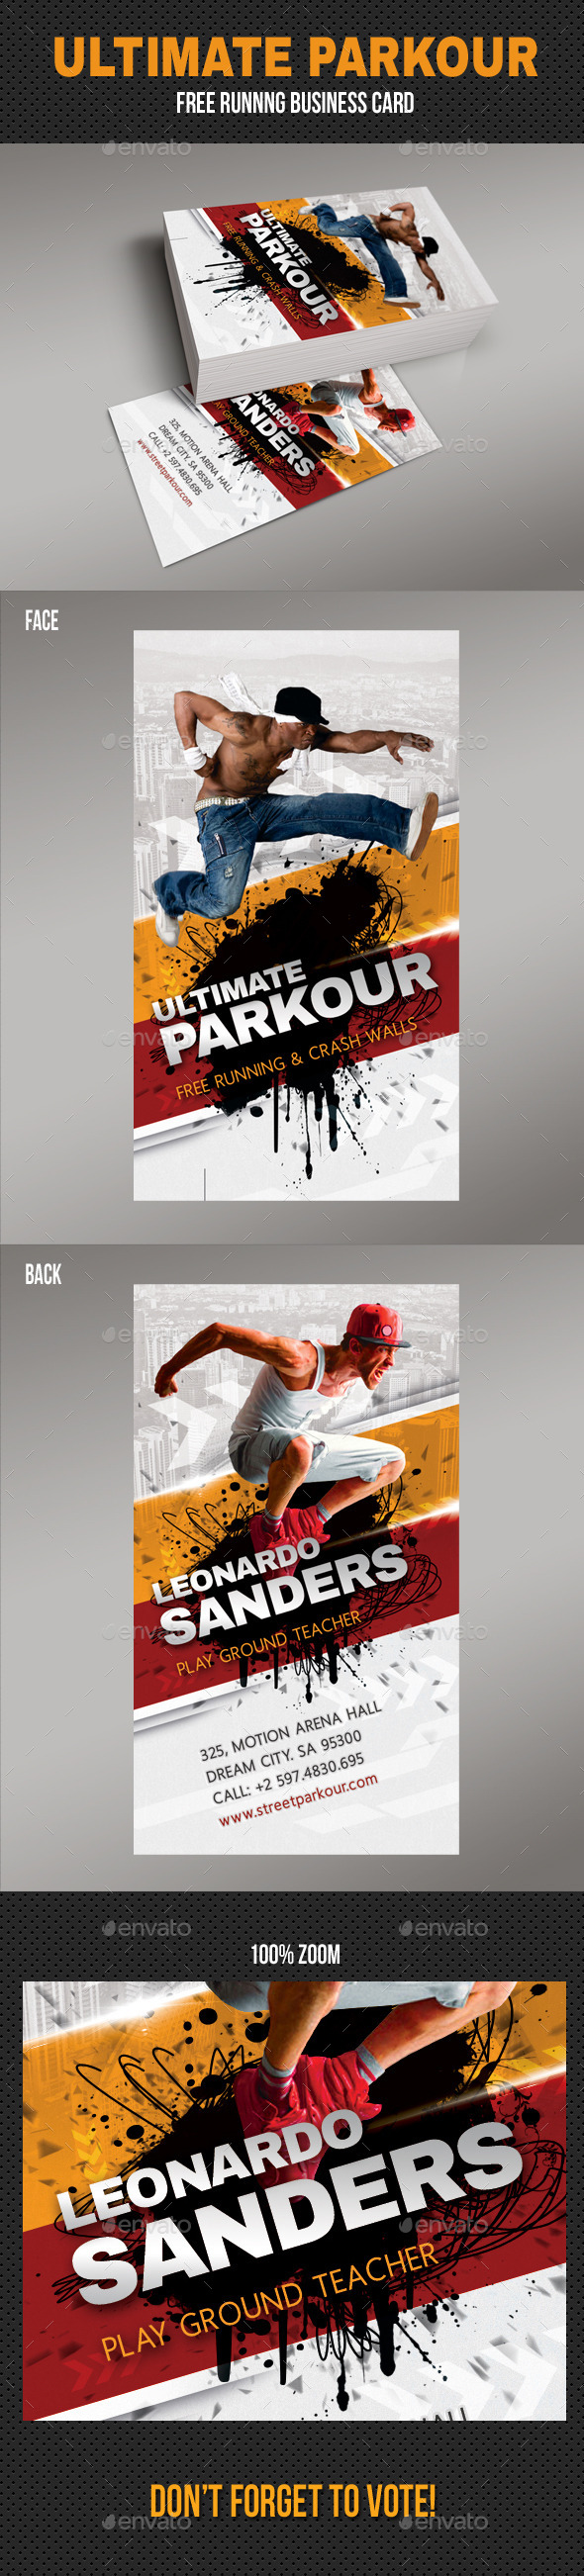 Ultimate Parkour Free Running Business Card - Creative Business Cards